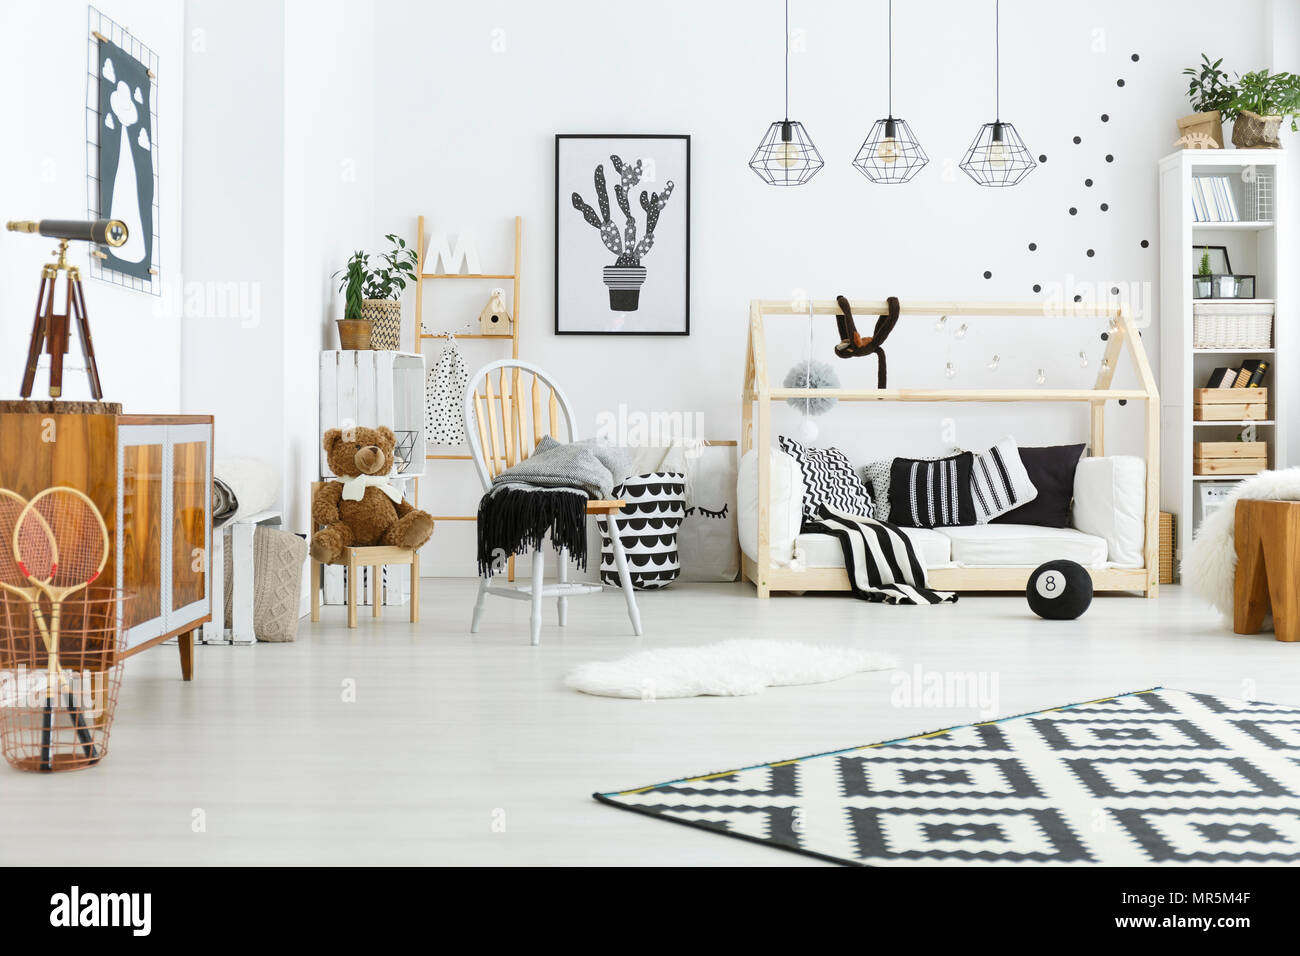 Kids Room With House Bed Dresser Chair And Bookshelf